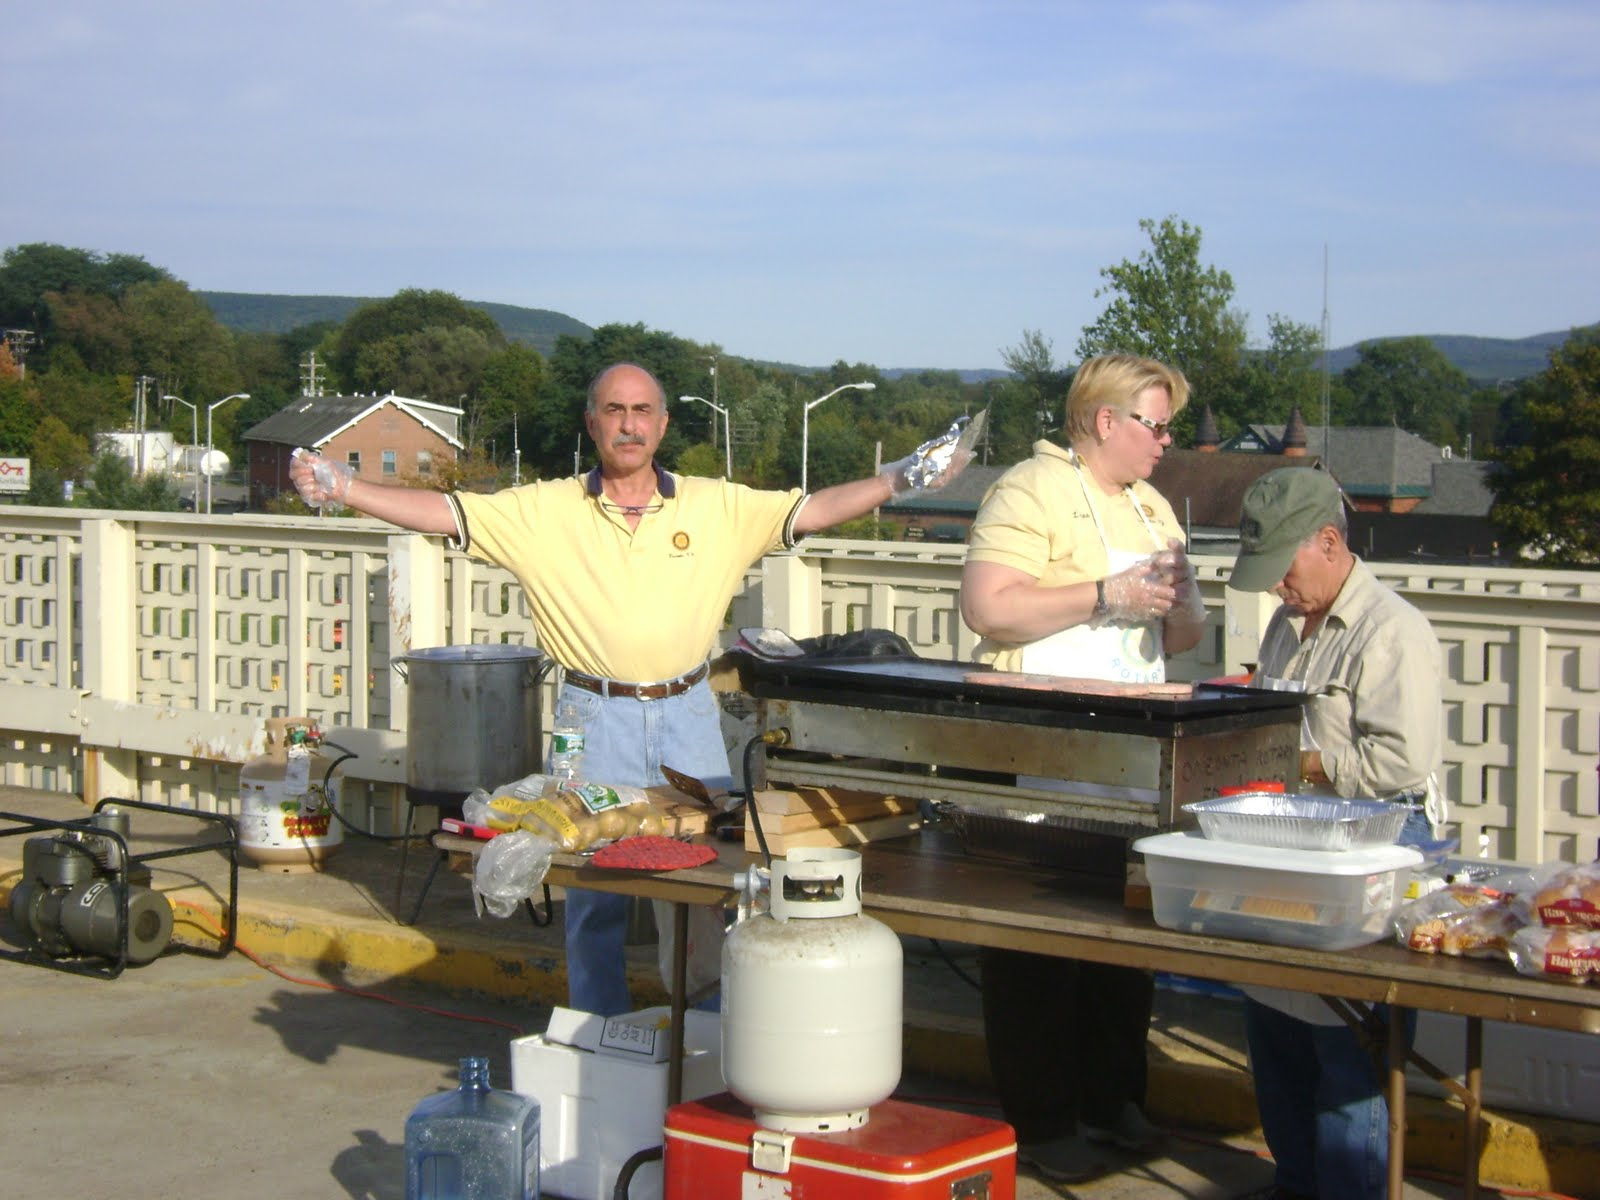 oneonta ny job corps with Oneonta Rotary Club Steps Up To Help on Destiny robinson furthermore Z2xlbm1vbnQgam9iIGNvcnBzIGRvcm1z additionally Suny Oneonta Pictures likewise Oneonta Rotary Club Steps Up To Help besides Office Of The Inspector Oig General Reports.